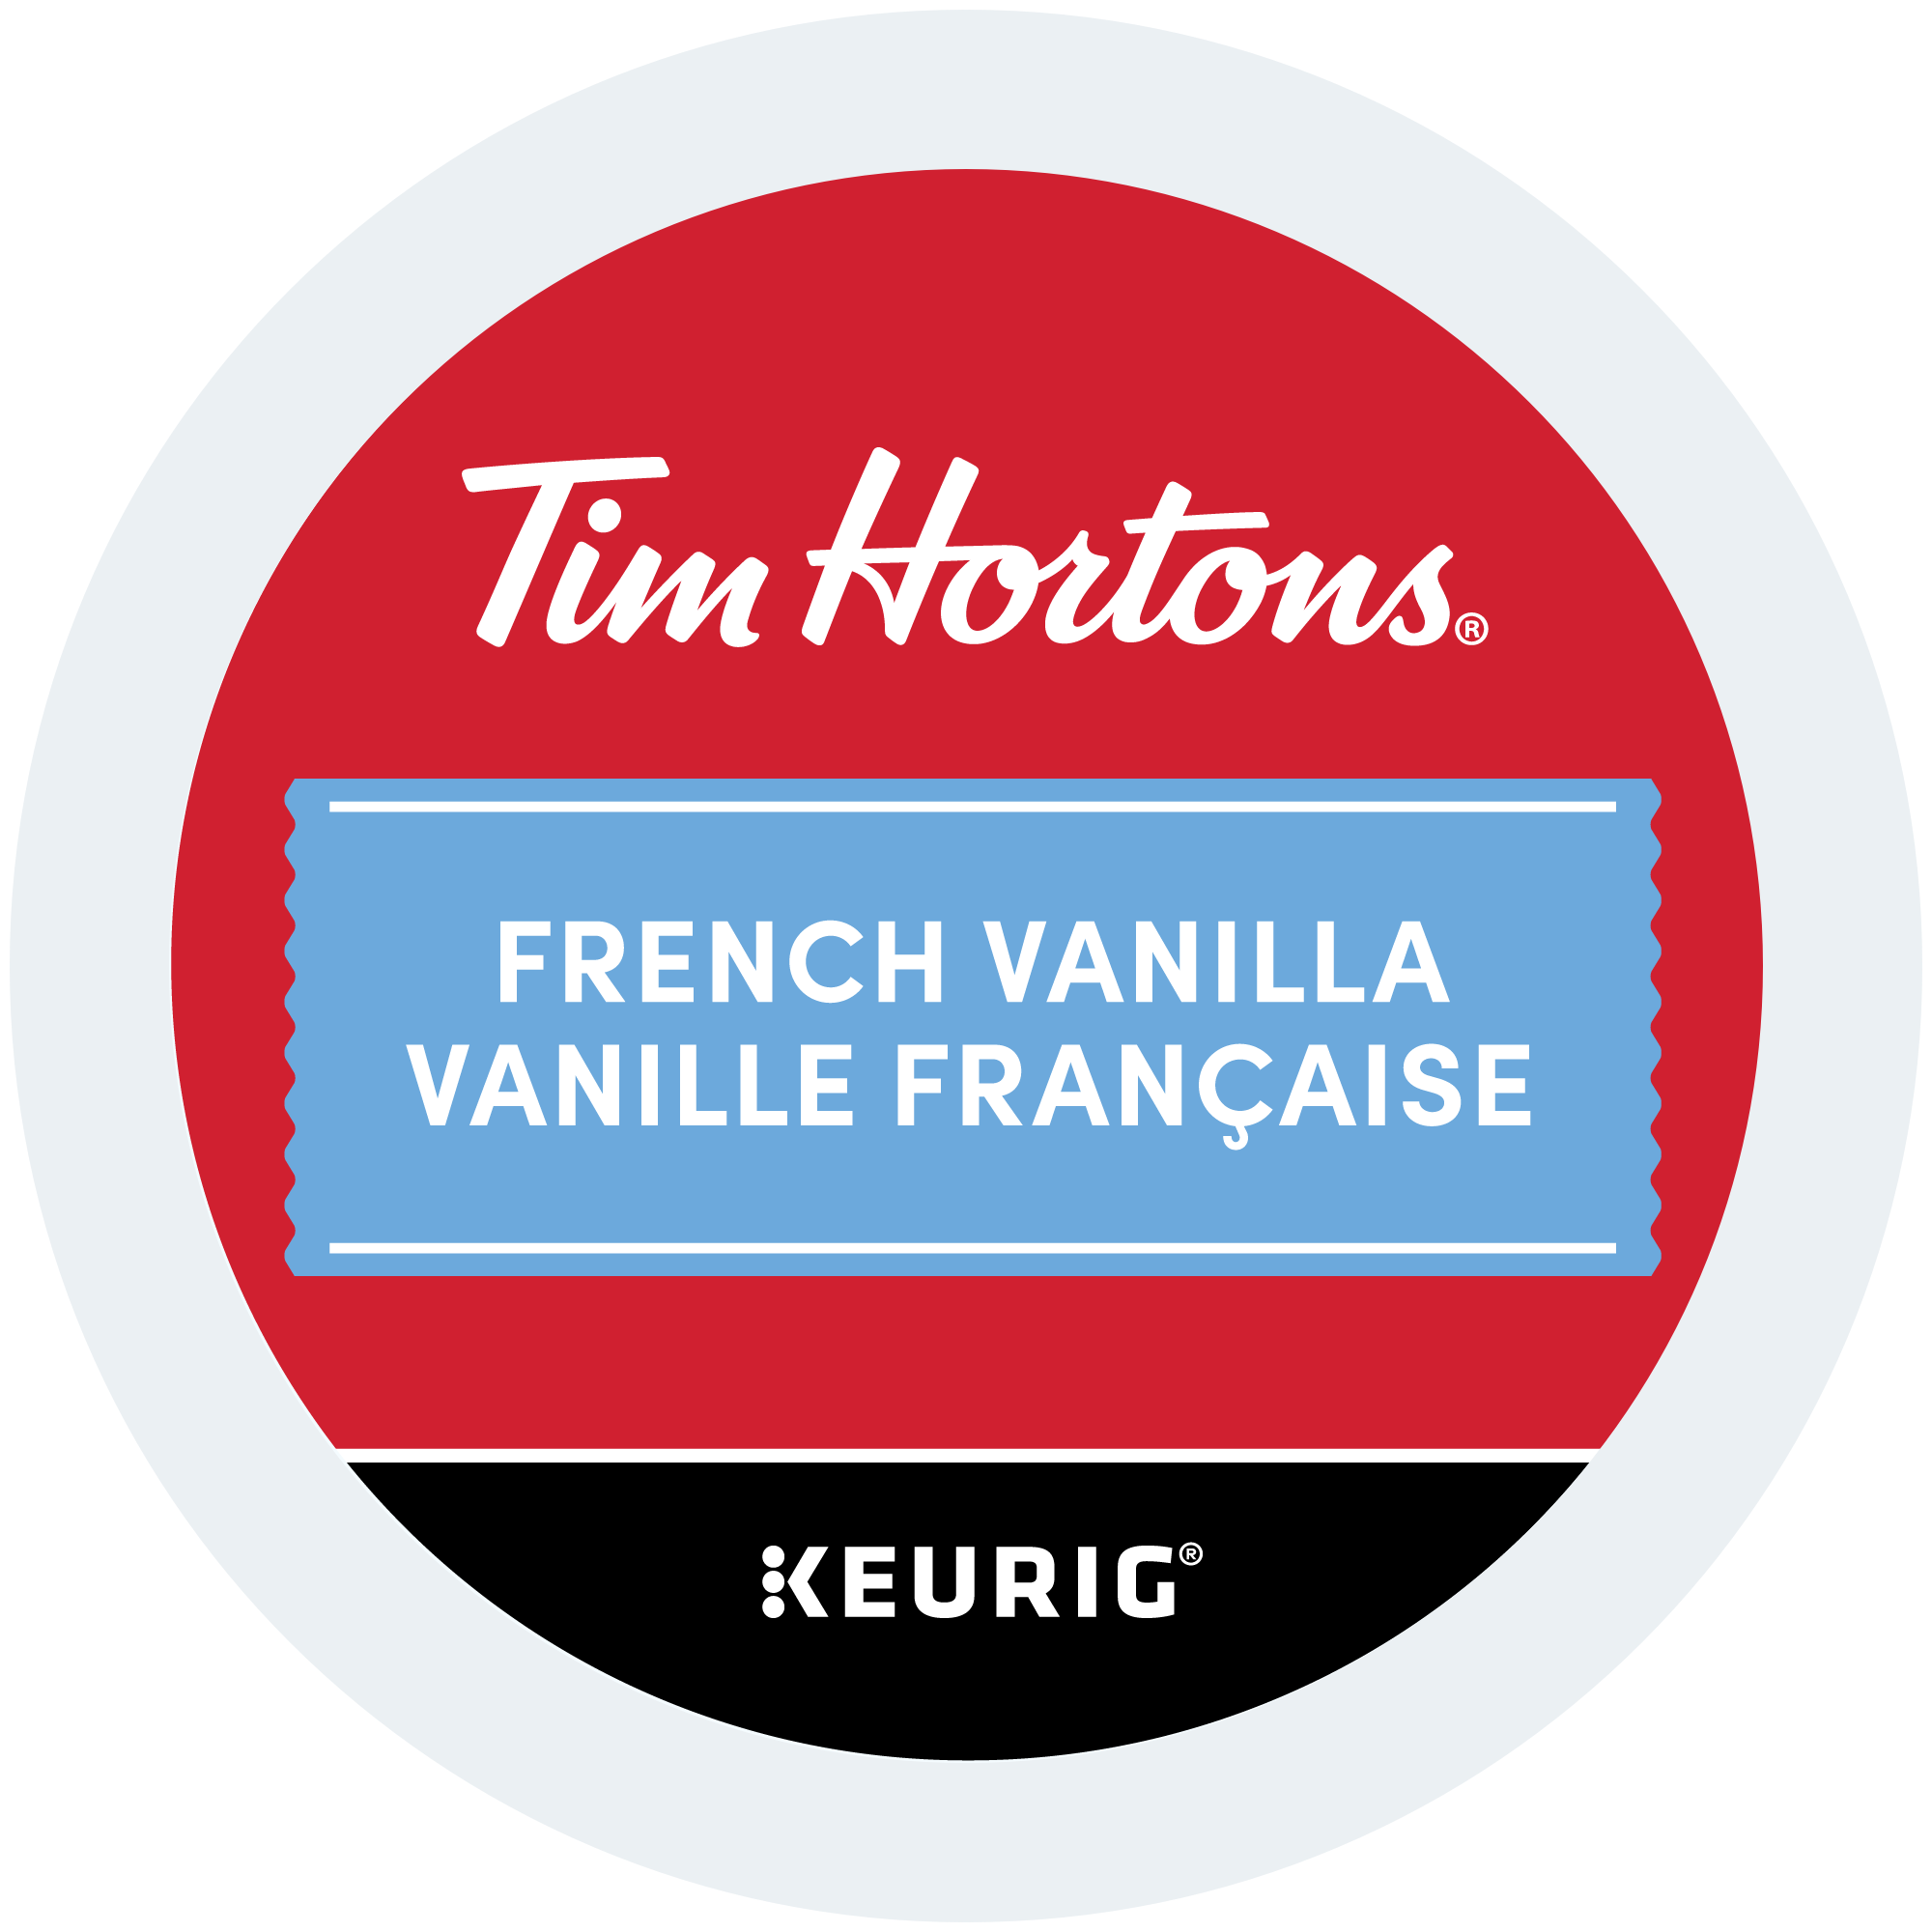 Tim Hortons® French Vanilla